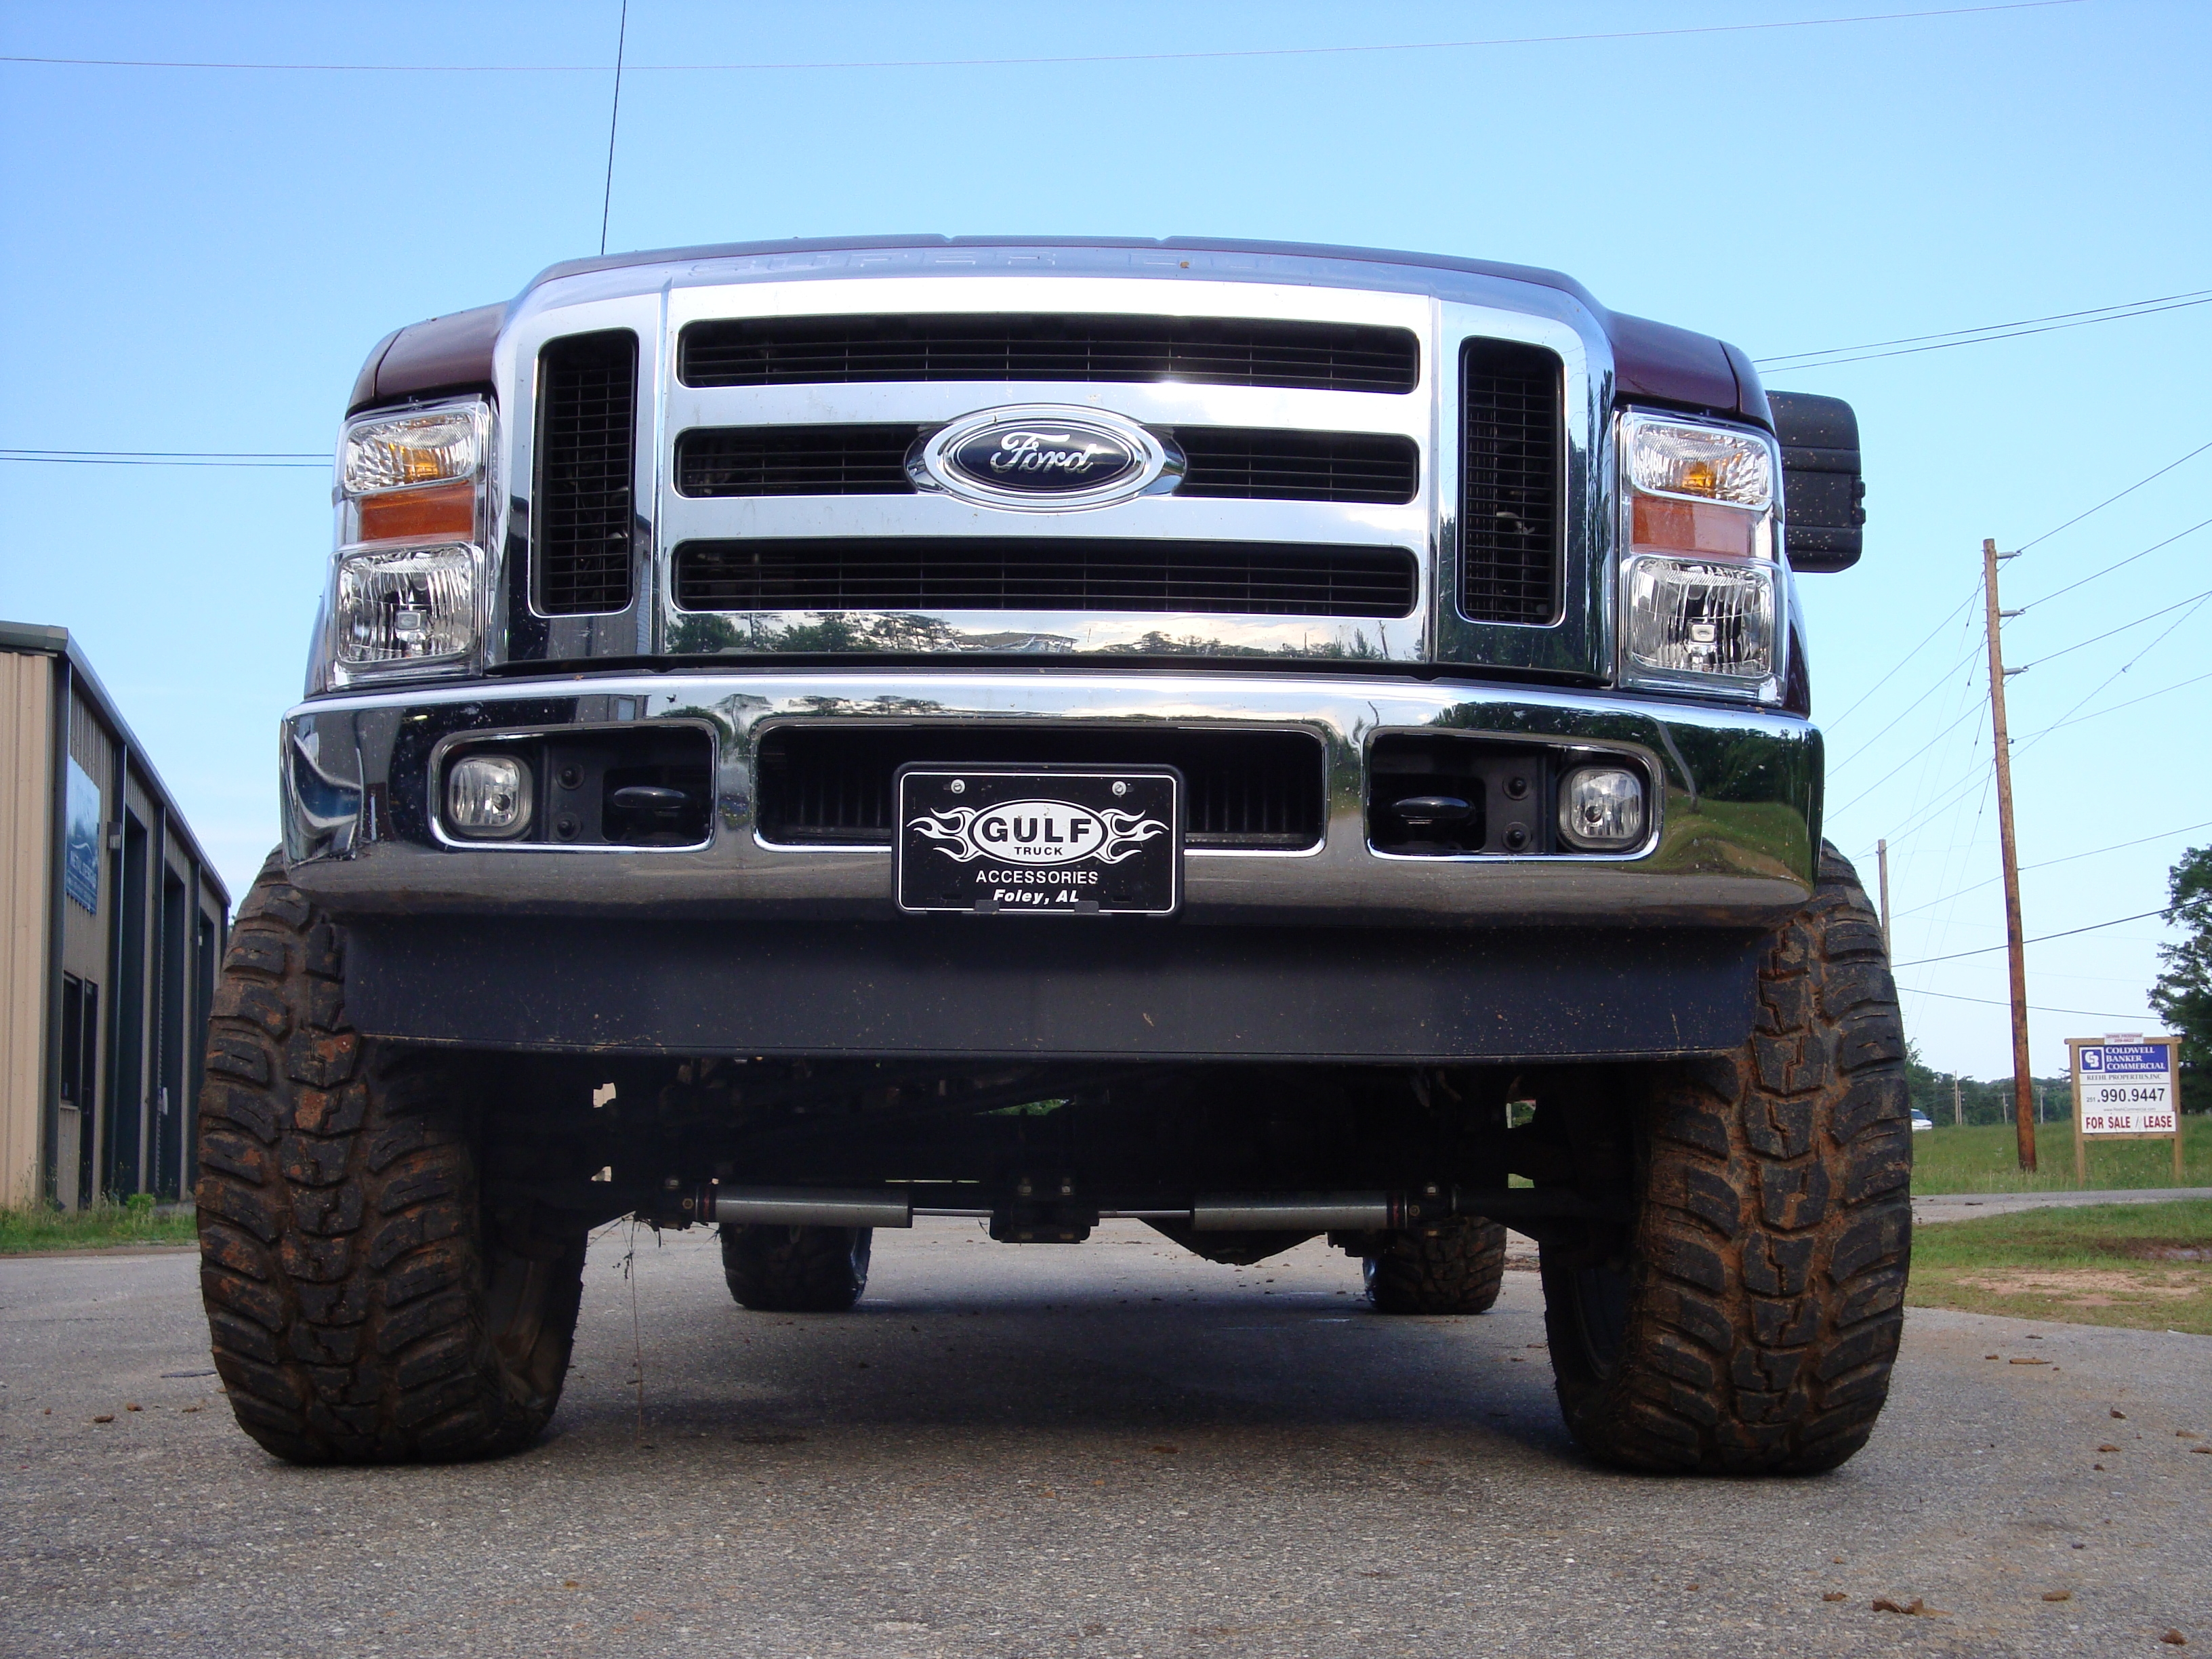 Another BlackfynCustoms1 2010 Ford F250 Super Duty Crew Cab post... - 14695406